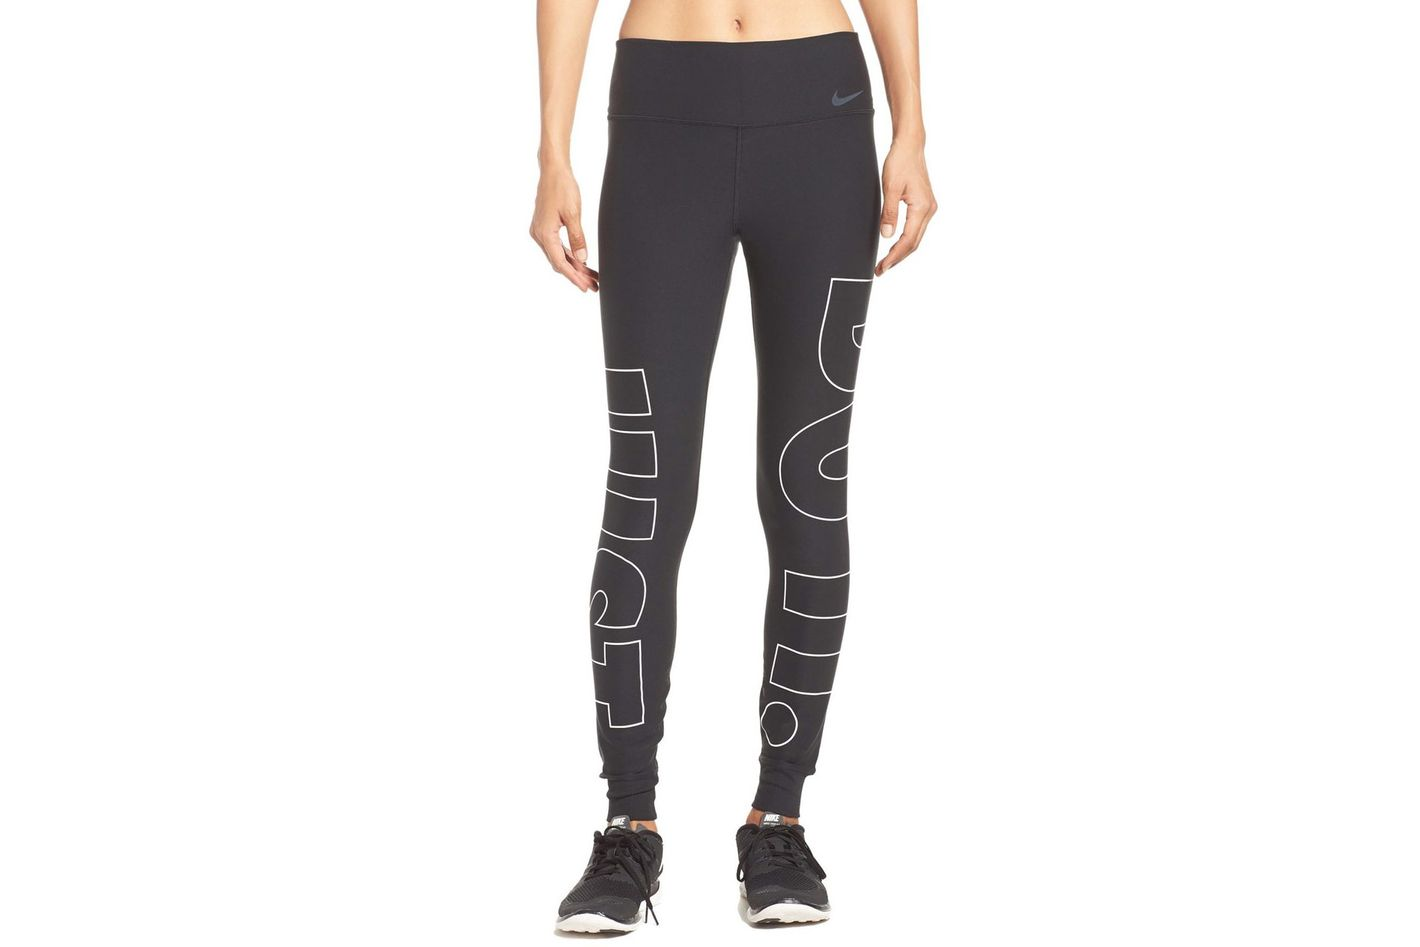 Nike Power Power Legendary Graphic Tights